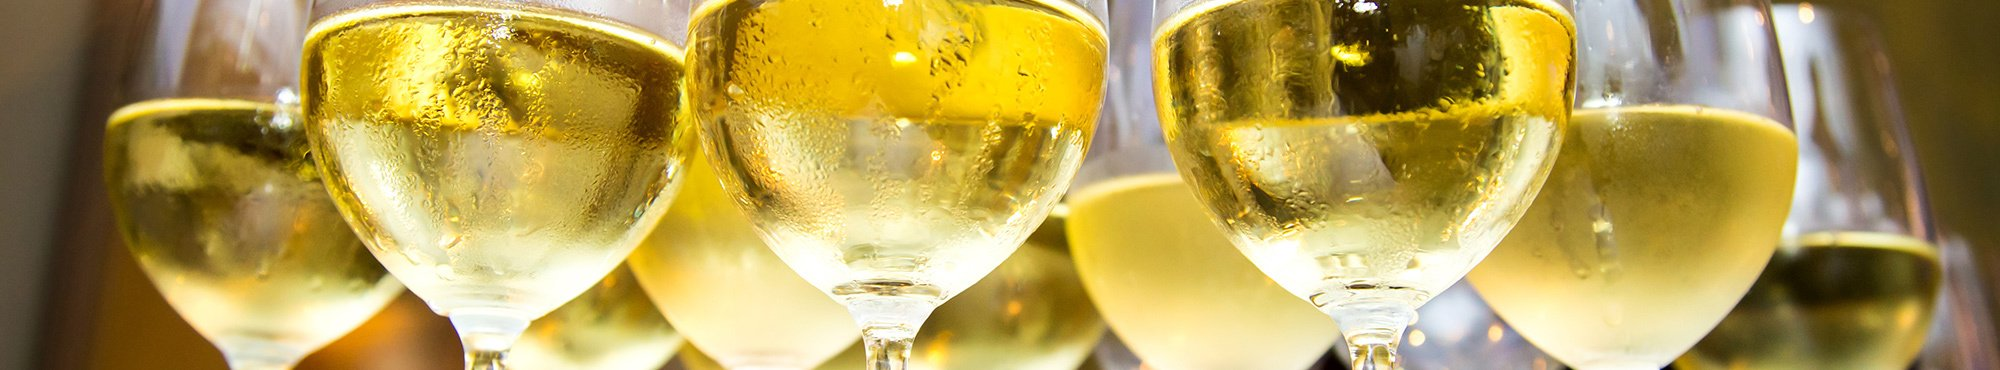 Close up of of wine glasses filled with white wine